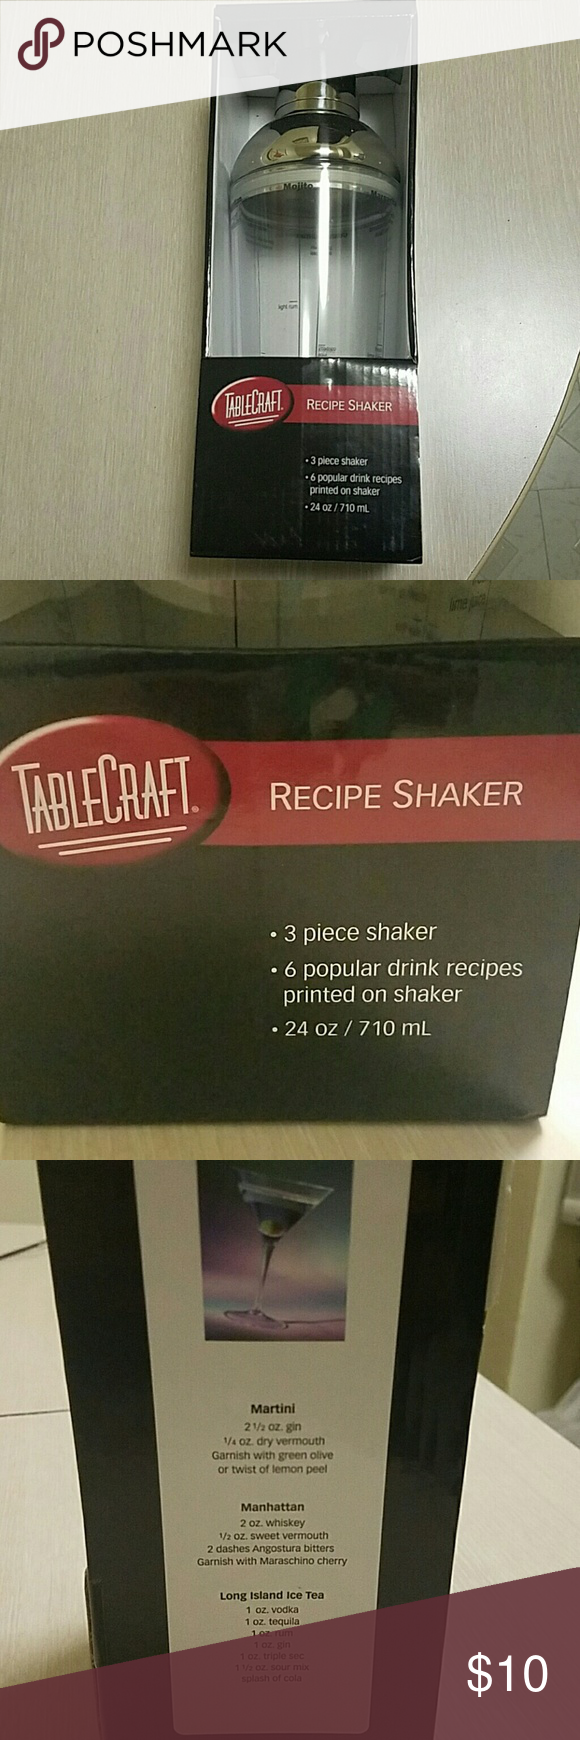 REDUCED PRICE! Cocktail shaker by Table Craft New, never used or opened 24 Oz shaker with 6 popular drink recipes printed on it. Will make nice gift this holiday season. Table craft  Other